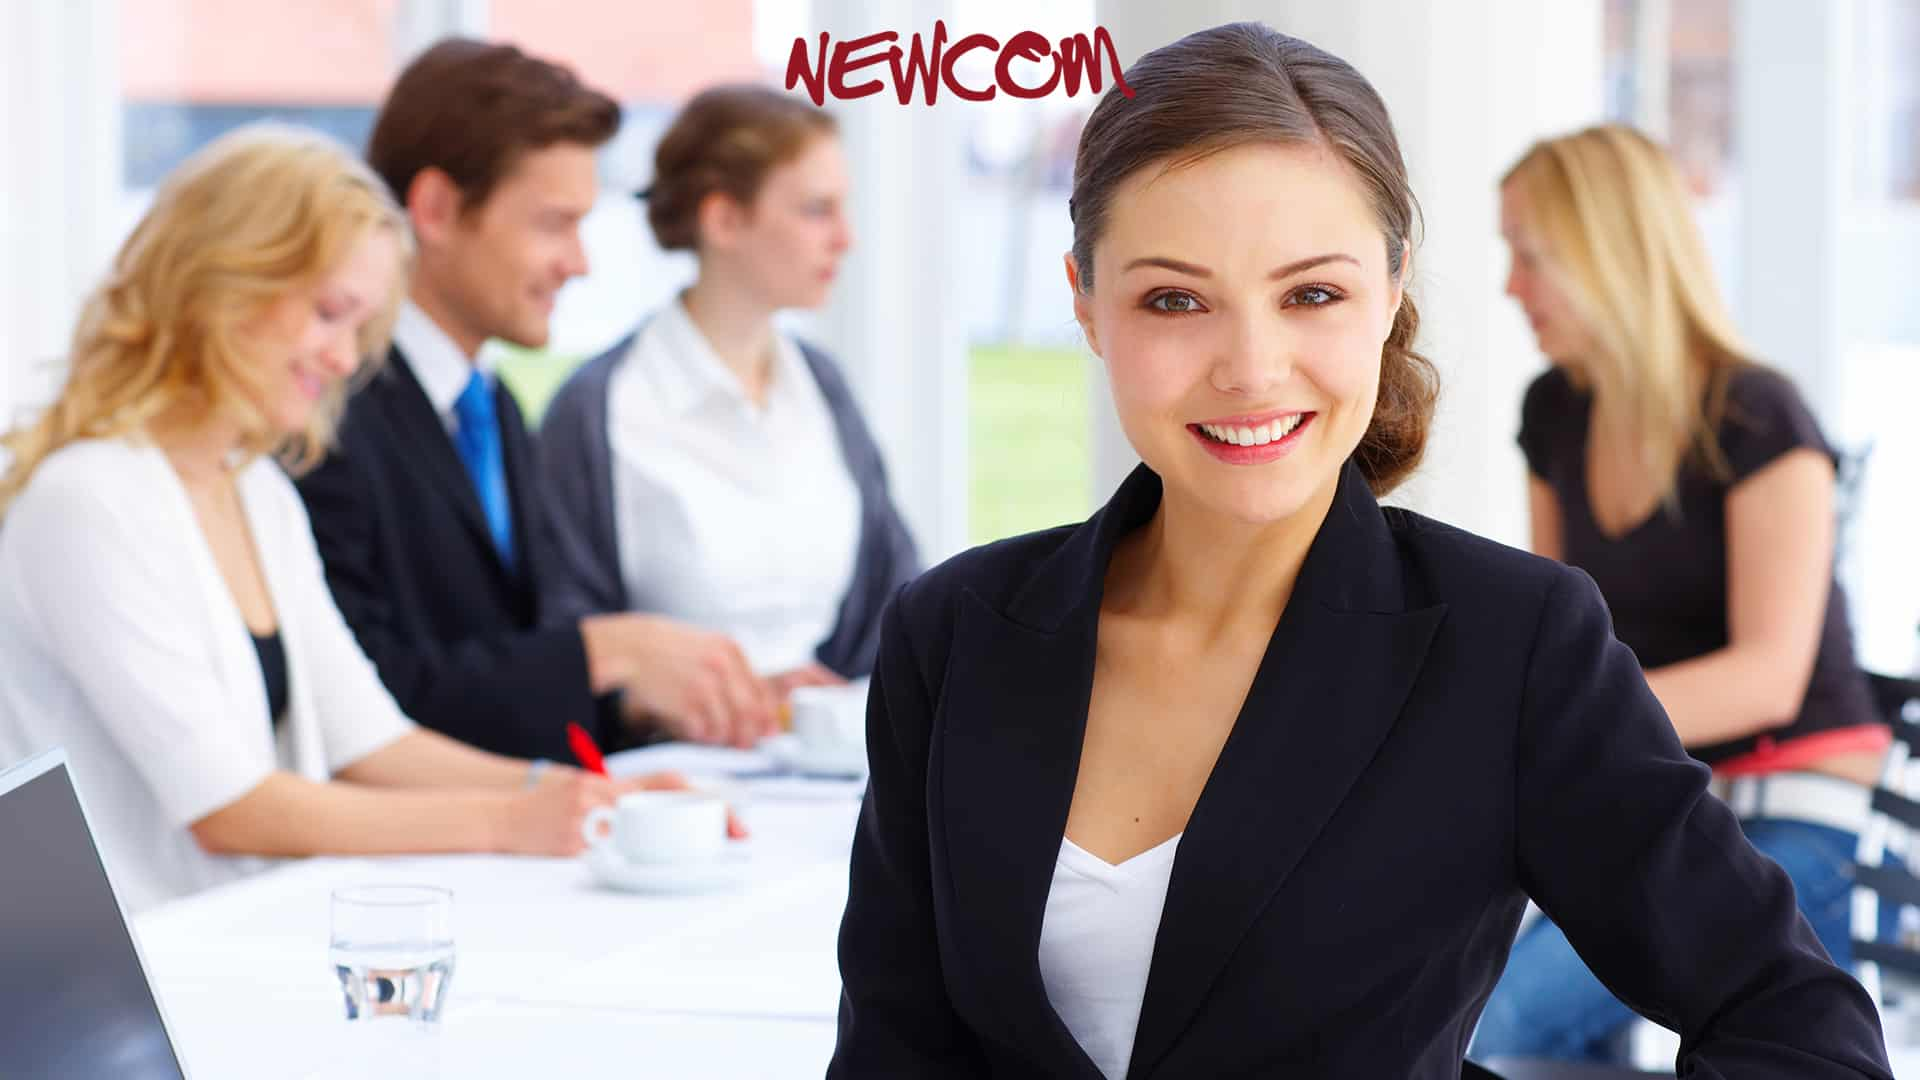 Newcom Consulting - Corsi - Manager coach - Thumb